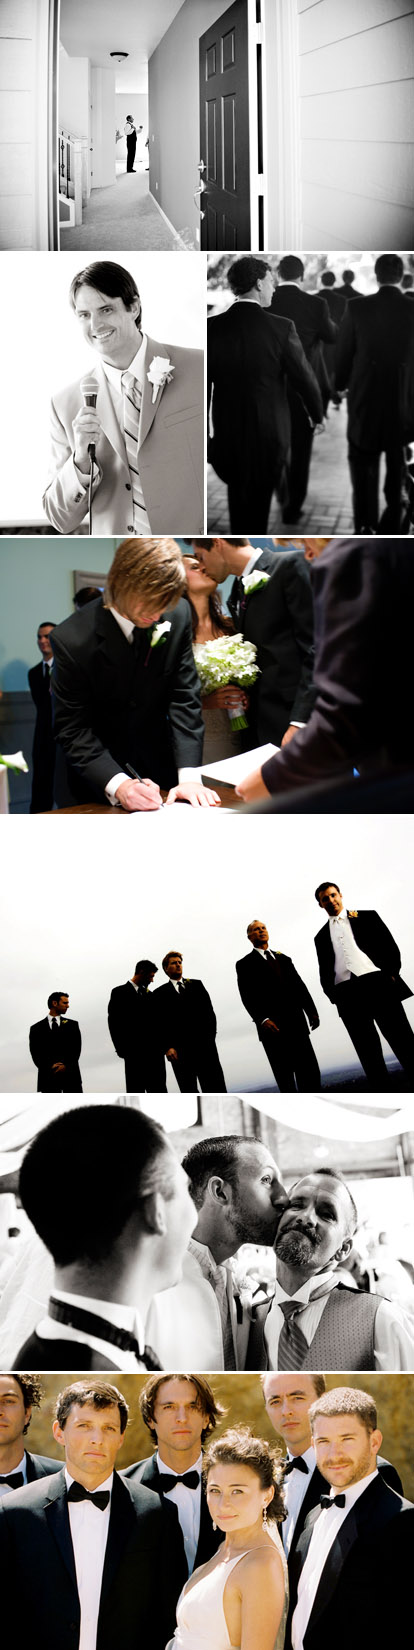 Choosing your best man for your wedding